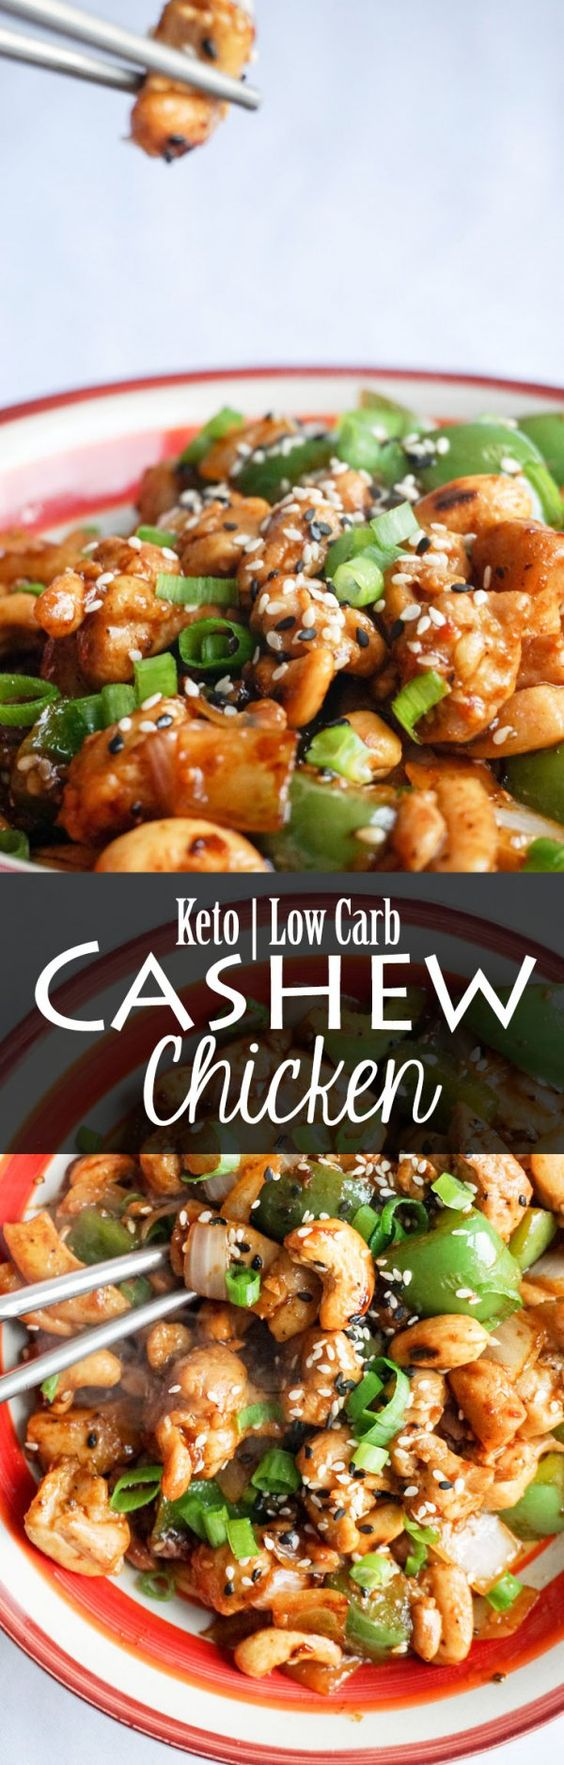 Best Low Carb Fast Food Dinner